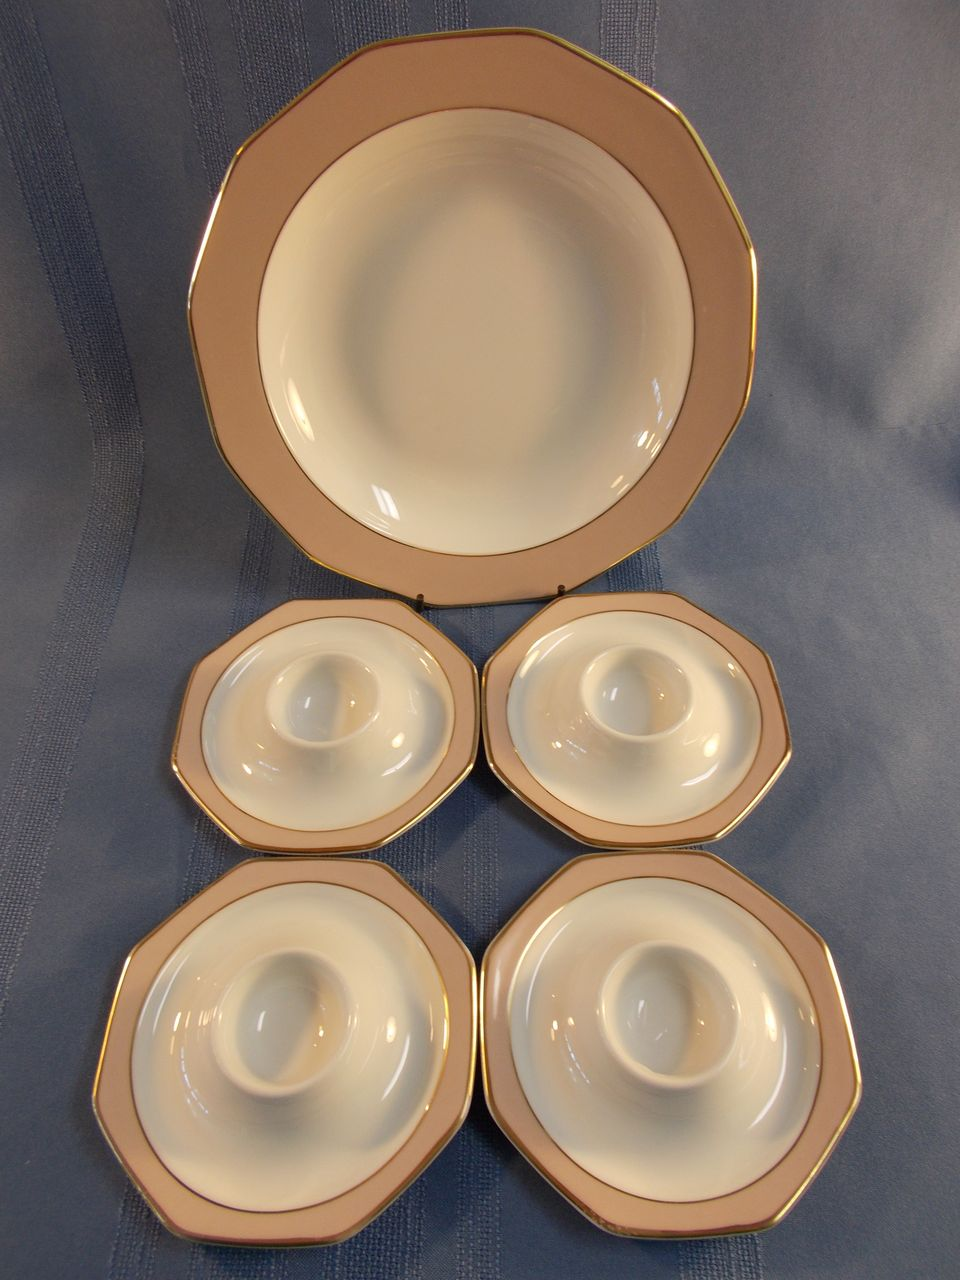 Winterling La Belle Soup Bowl and 4 Egg Saucers